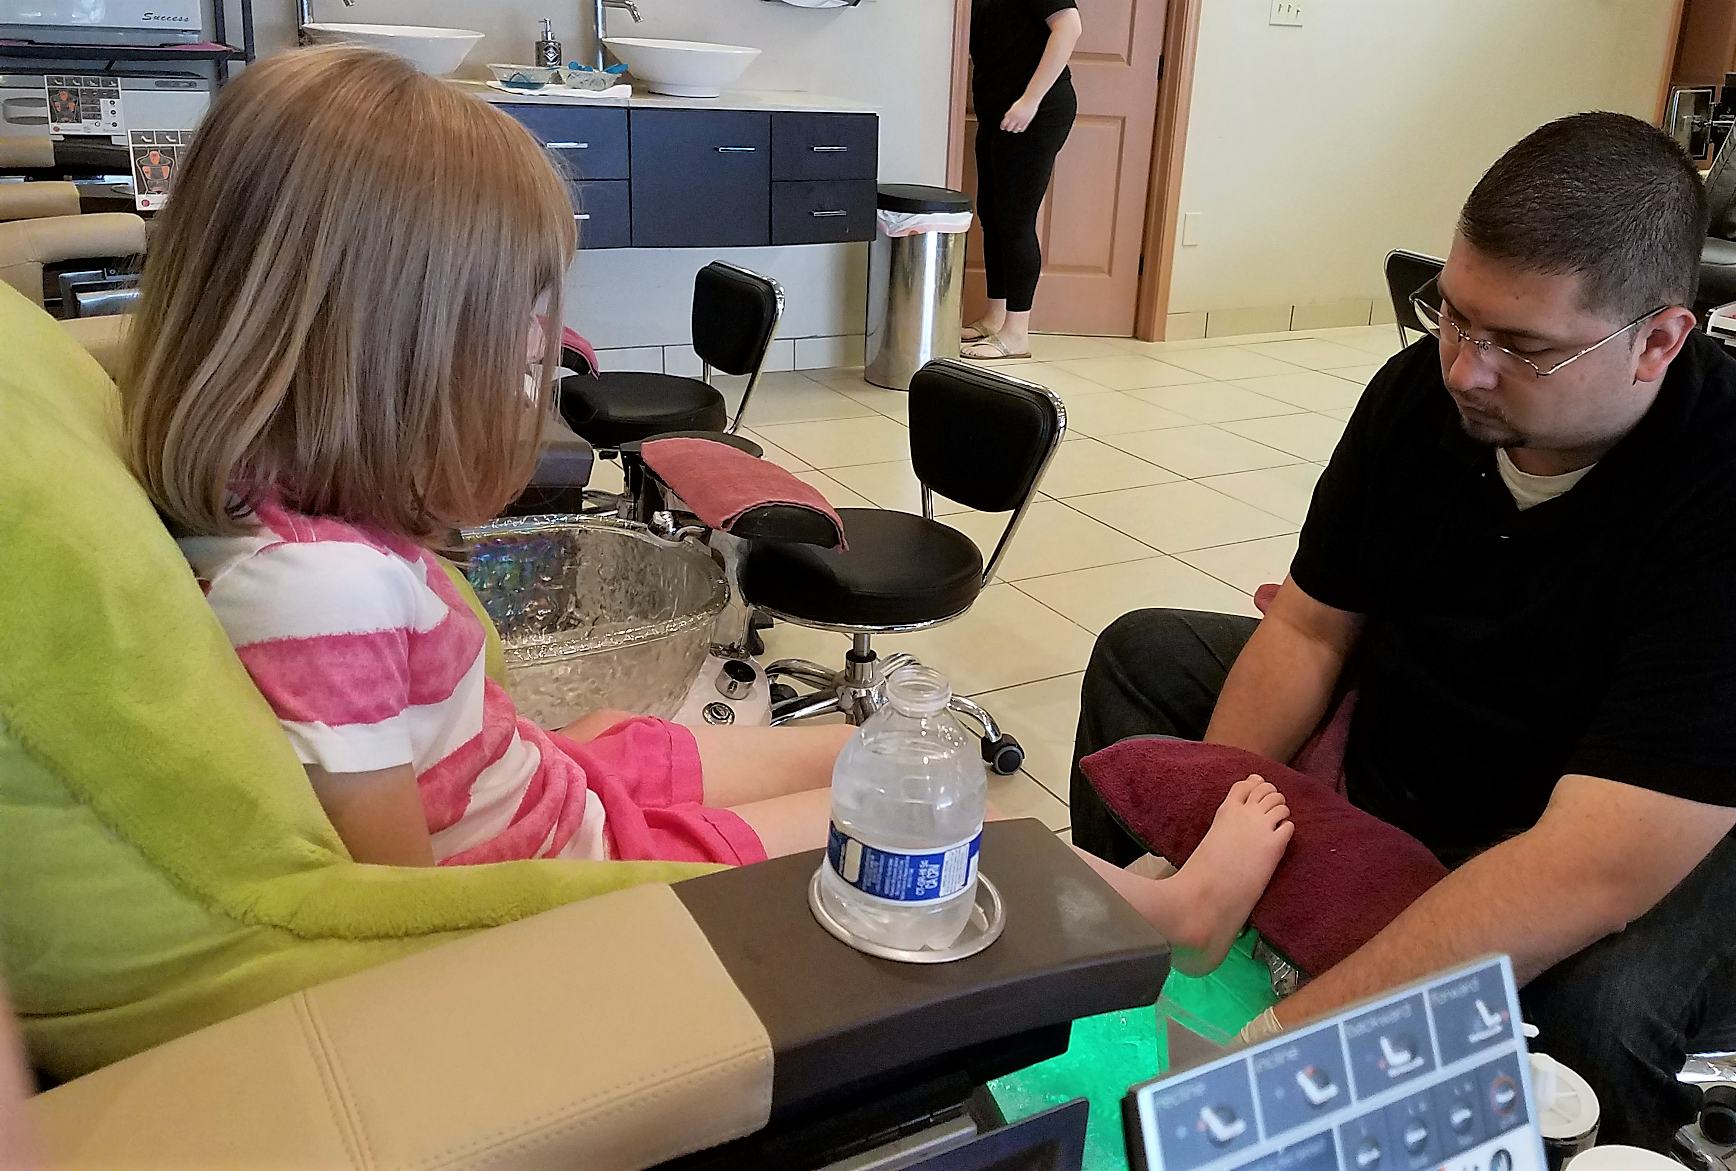 Boerne Nails and Spa, Boerne, Texas